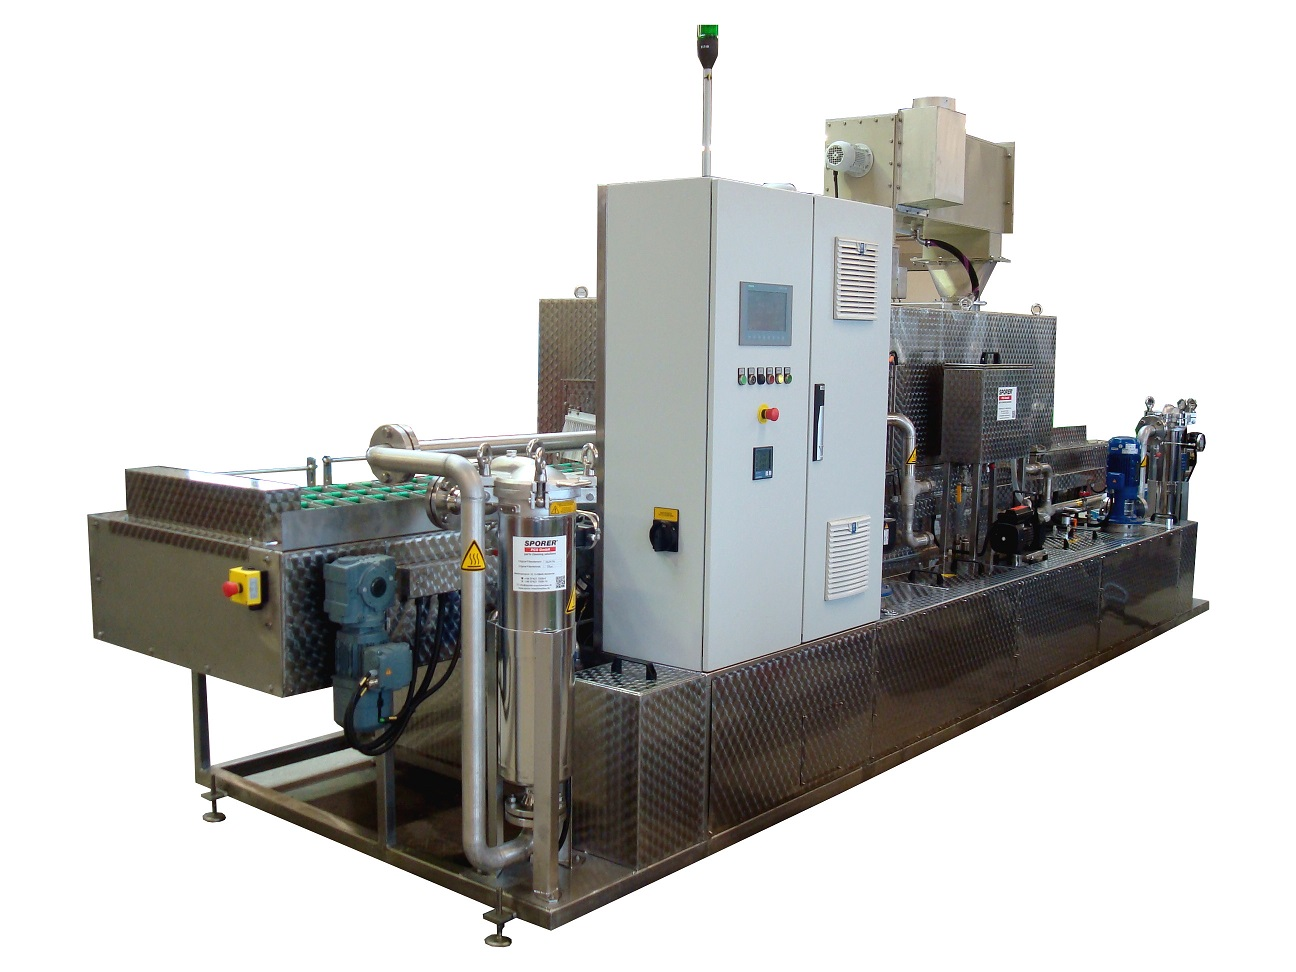 Cycled, robot-equipped continuous cleaning system cleaning / rinsing / drying with customer-specific component fixtures